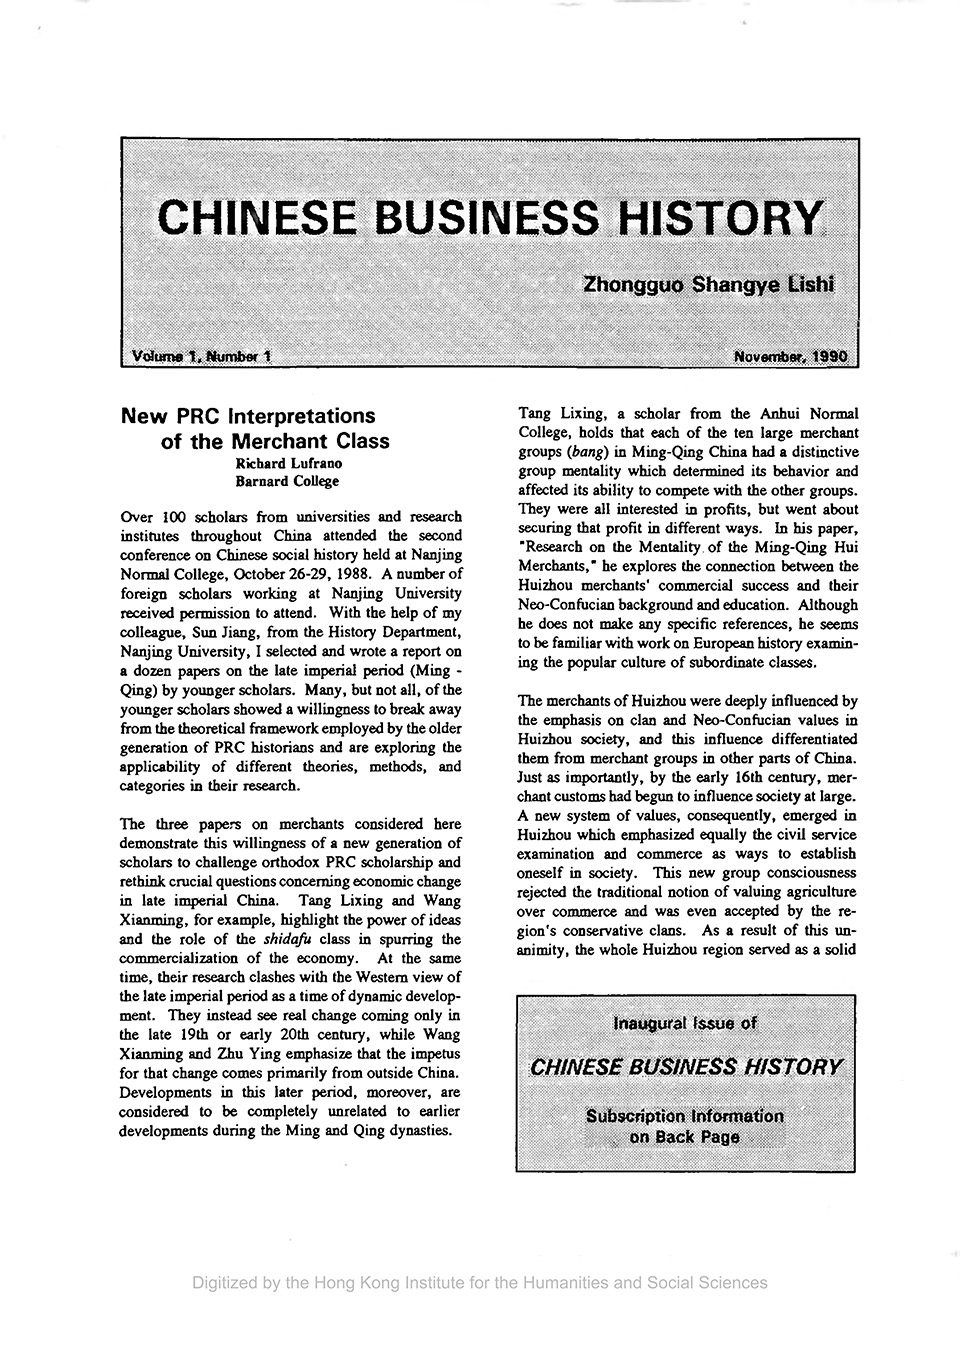 Cover of Chinese Business History Journal Volume 1, Number 1